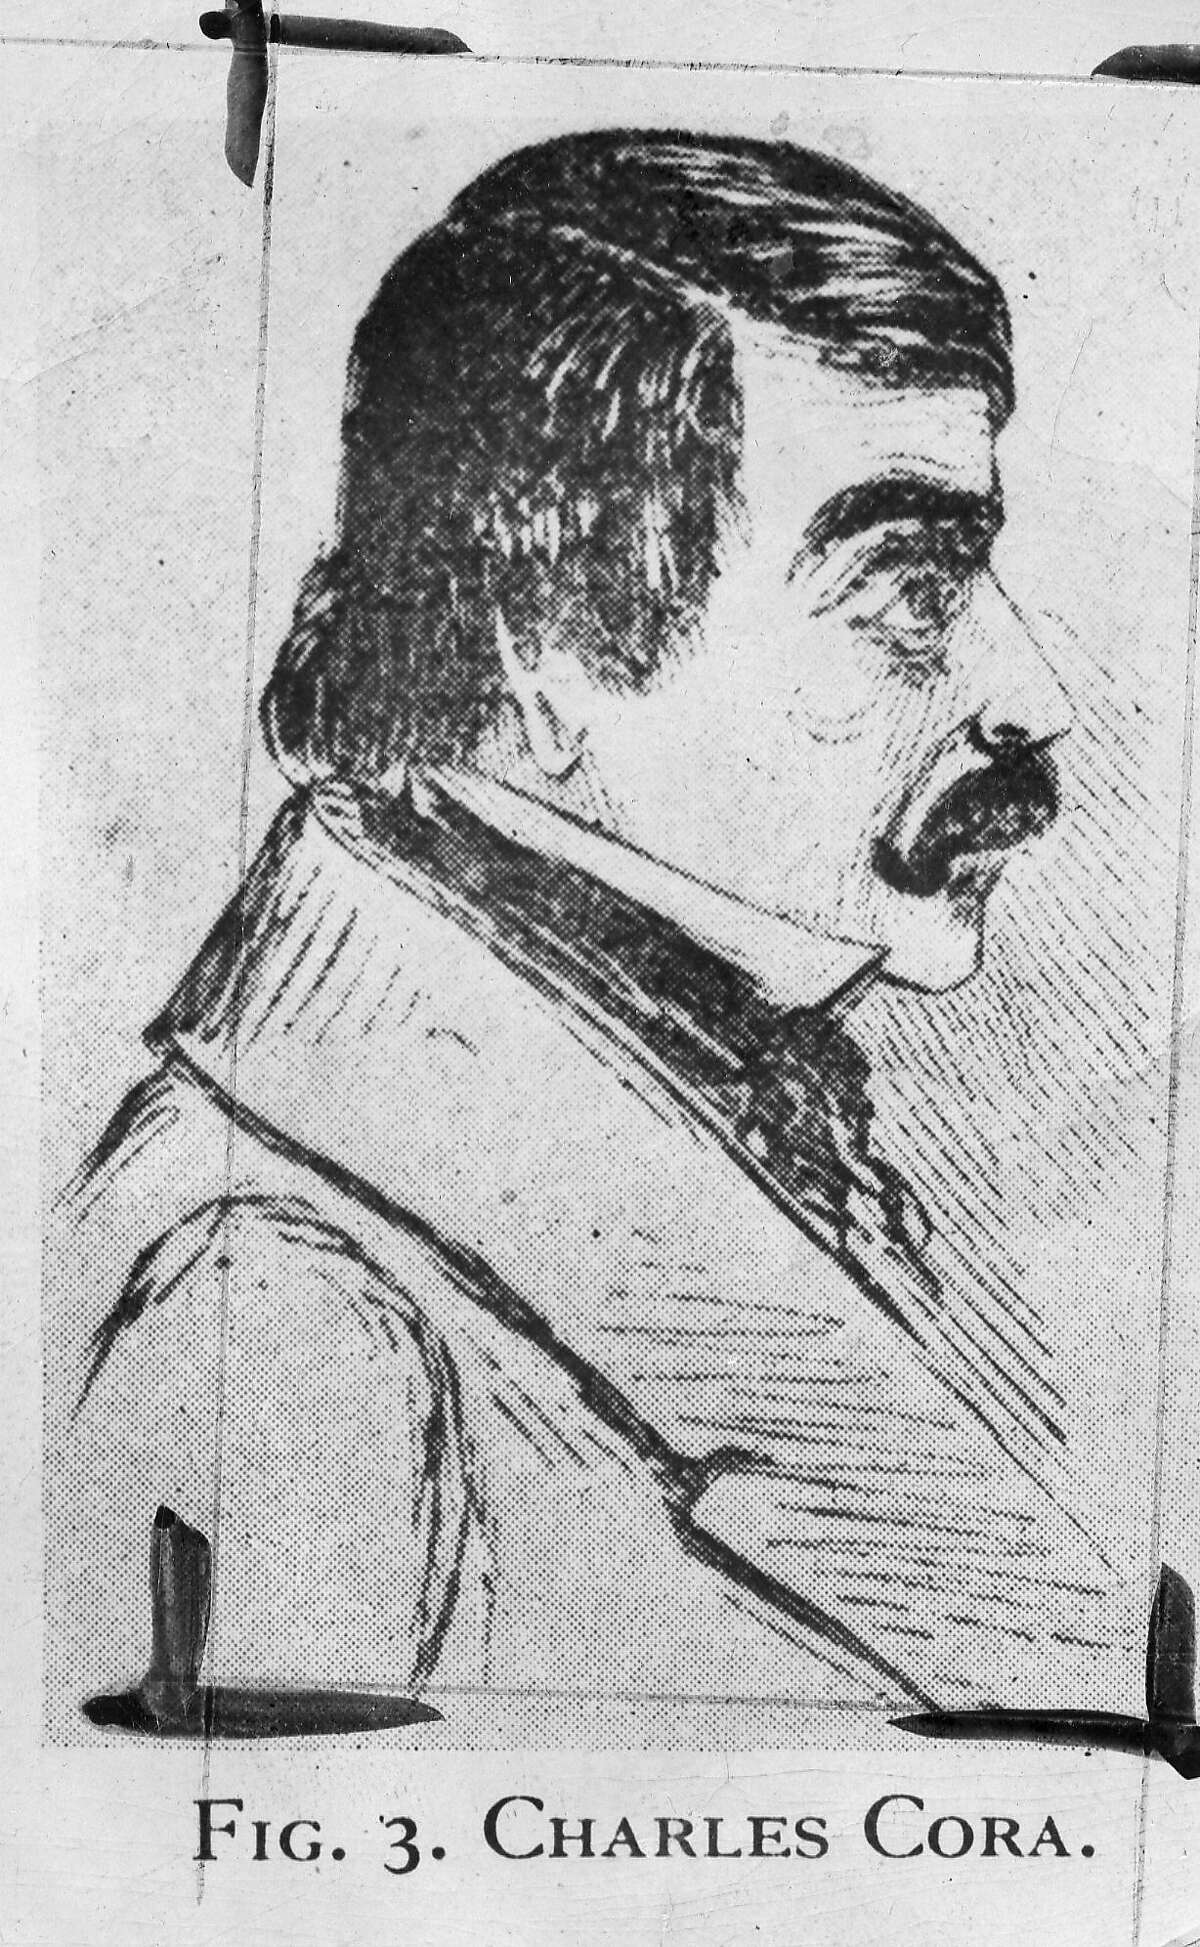 Charles Cora was a debonair blade who was one of the town's leading professional gamblers.